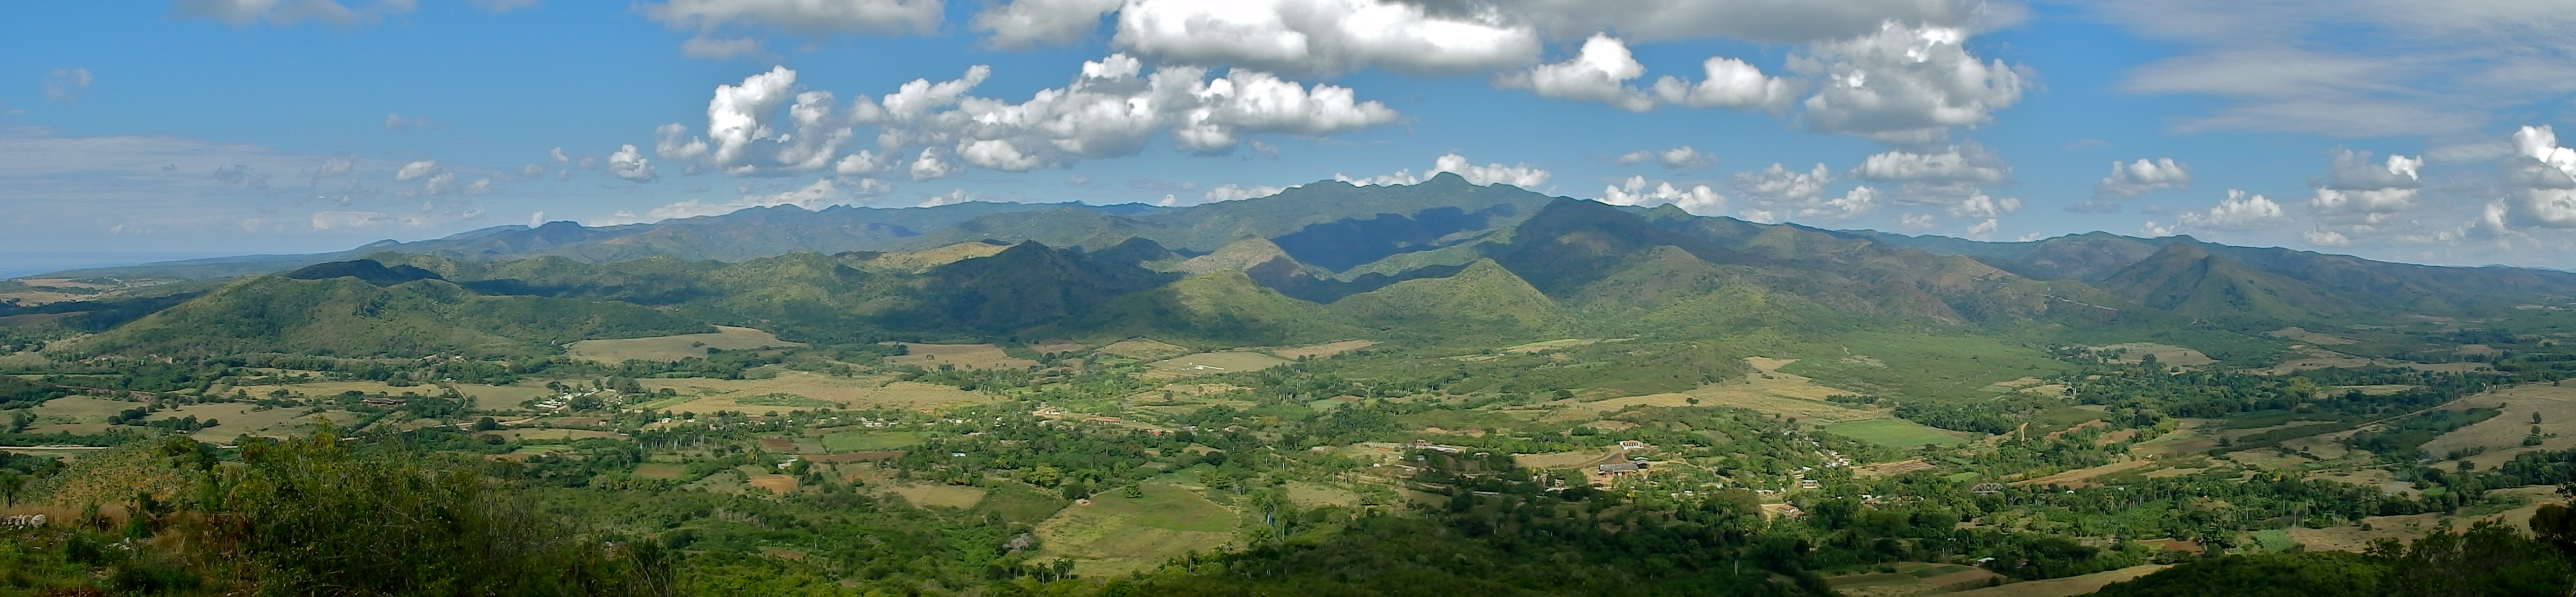 View over Trinidad from Cerro de la Vigia what to do in cuba solo is cuba safe for solo travellers?